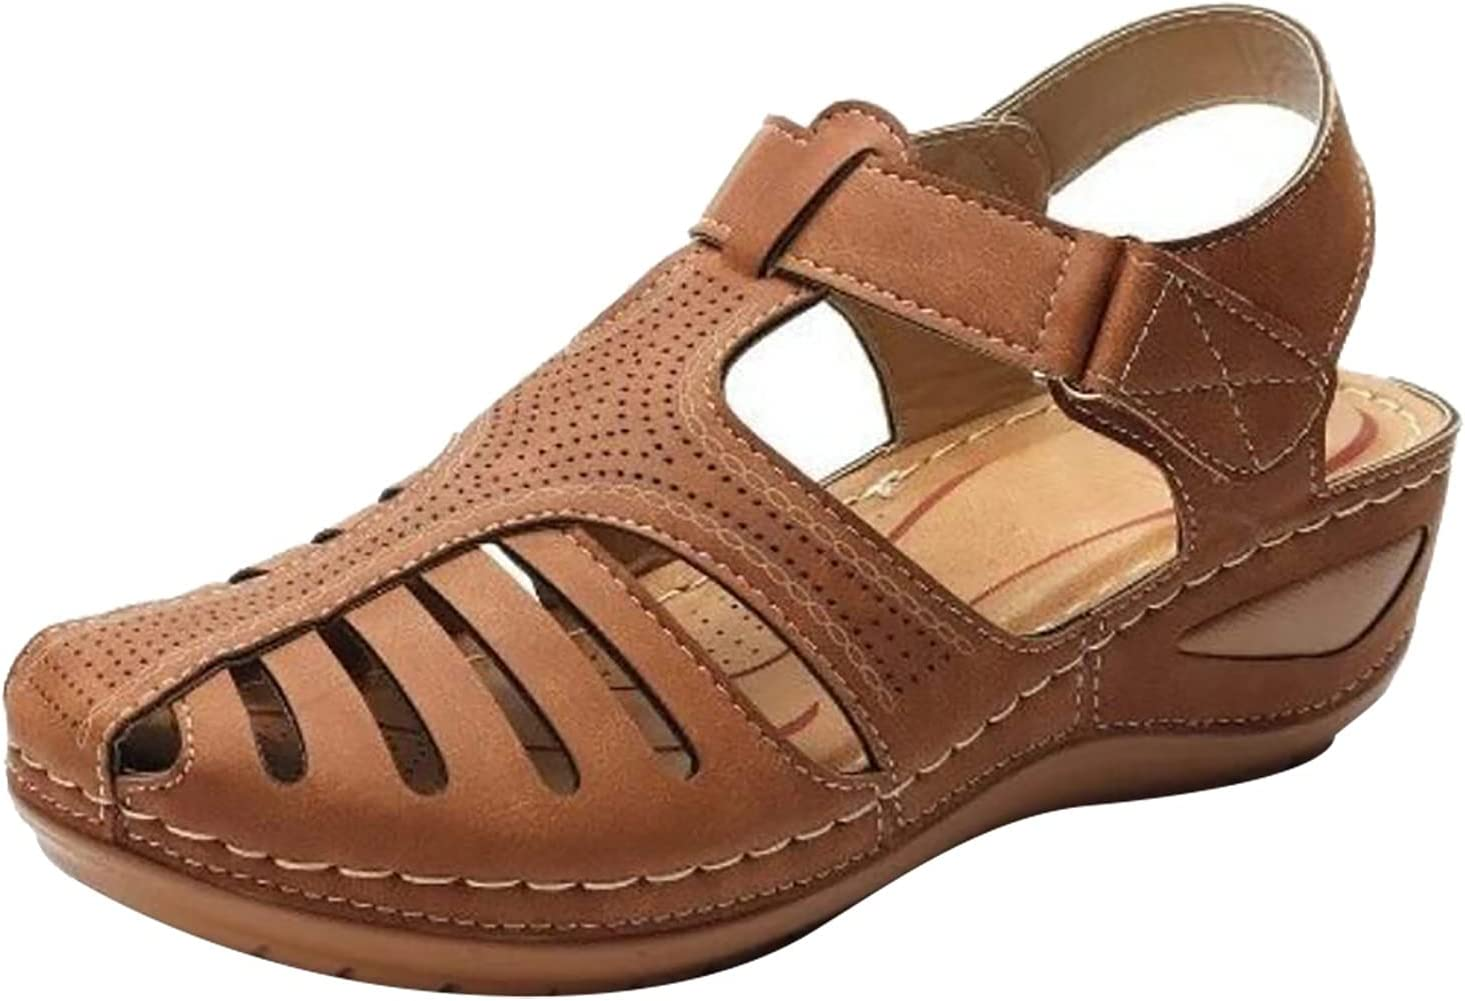 Cbcbtwo Women's Summer Sandals Casual Bohemia Gladiator Wedge Shoes Comfortable Ankle Strap Outdoor Platform Sandal